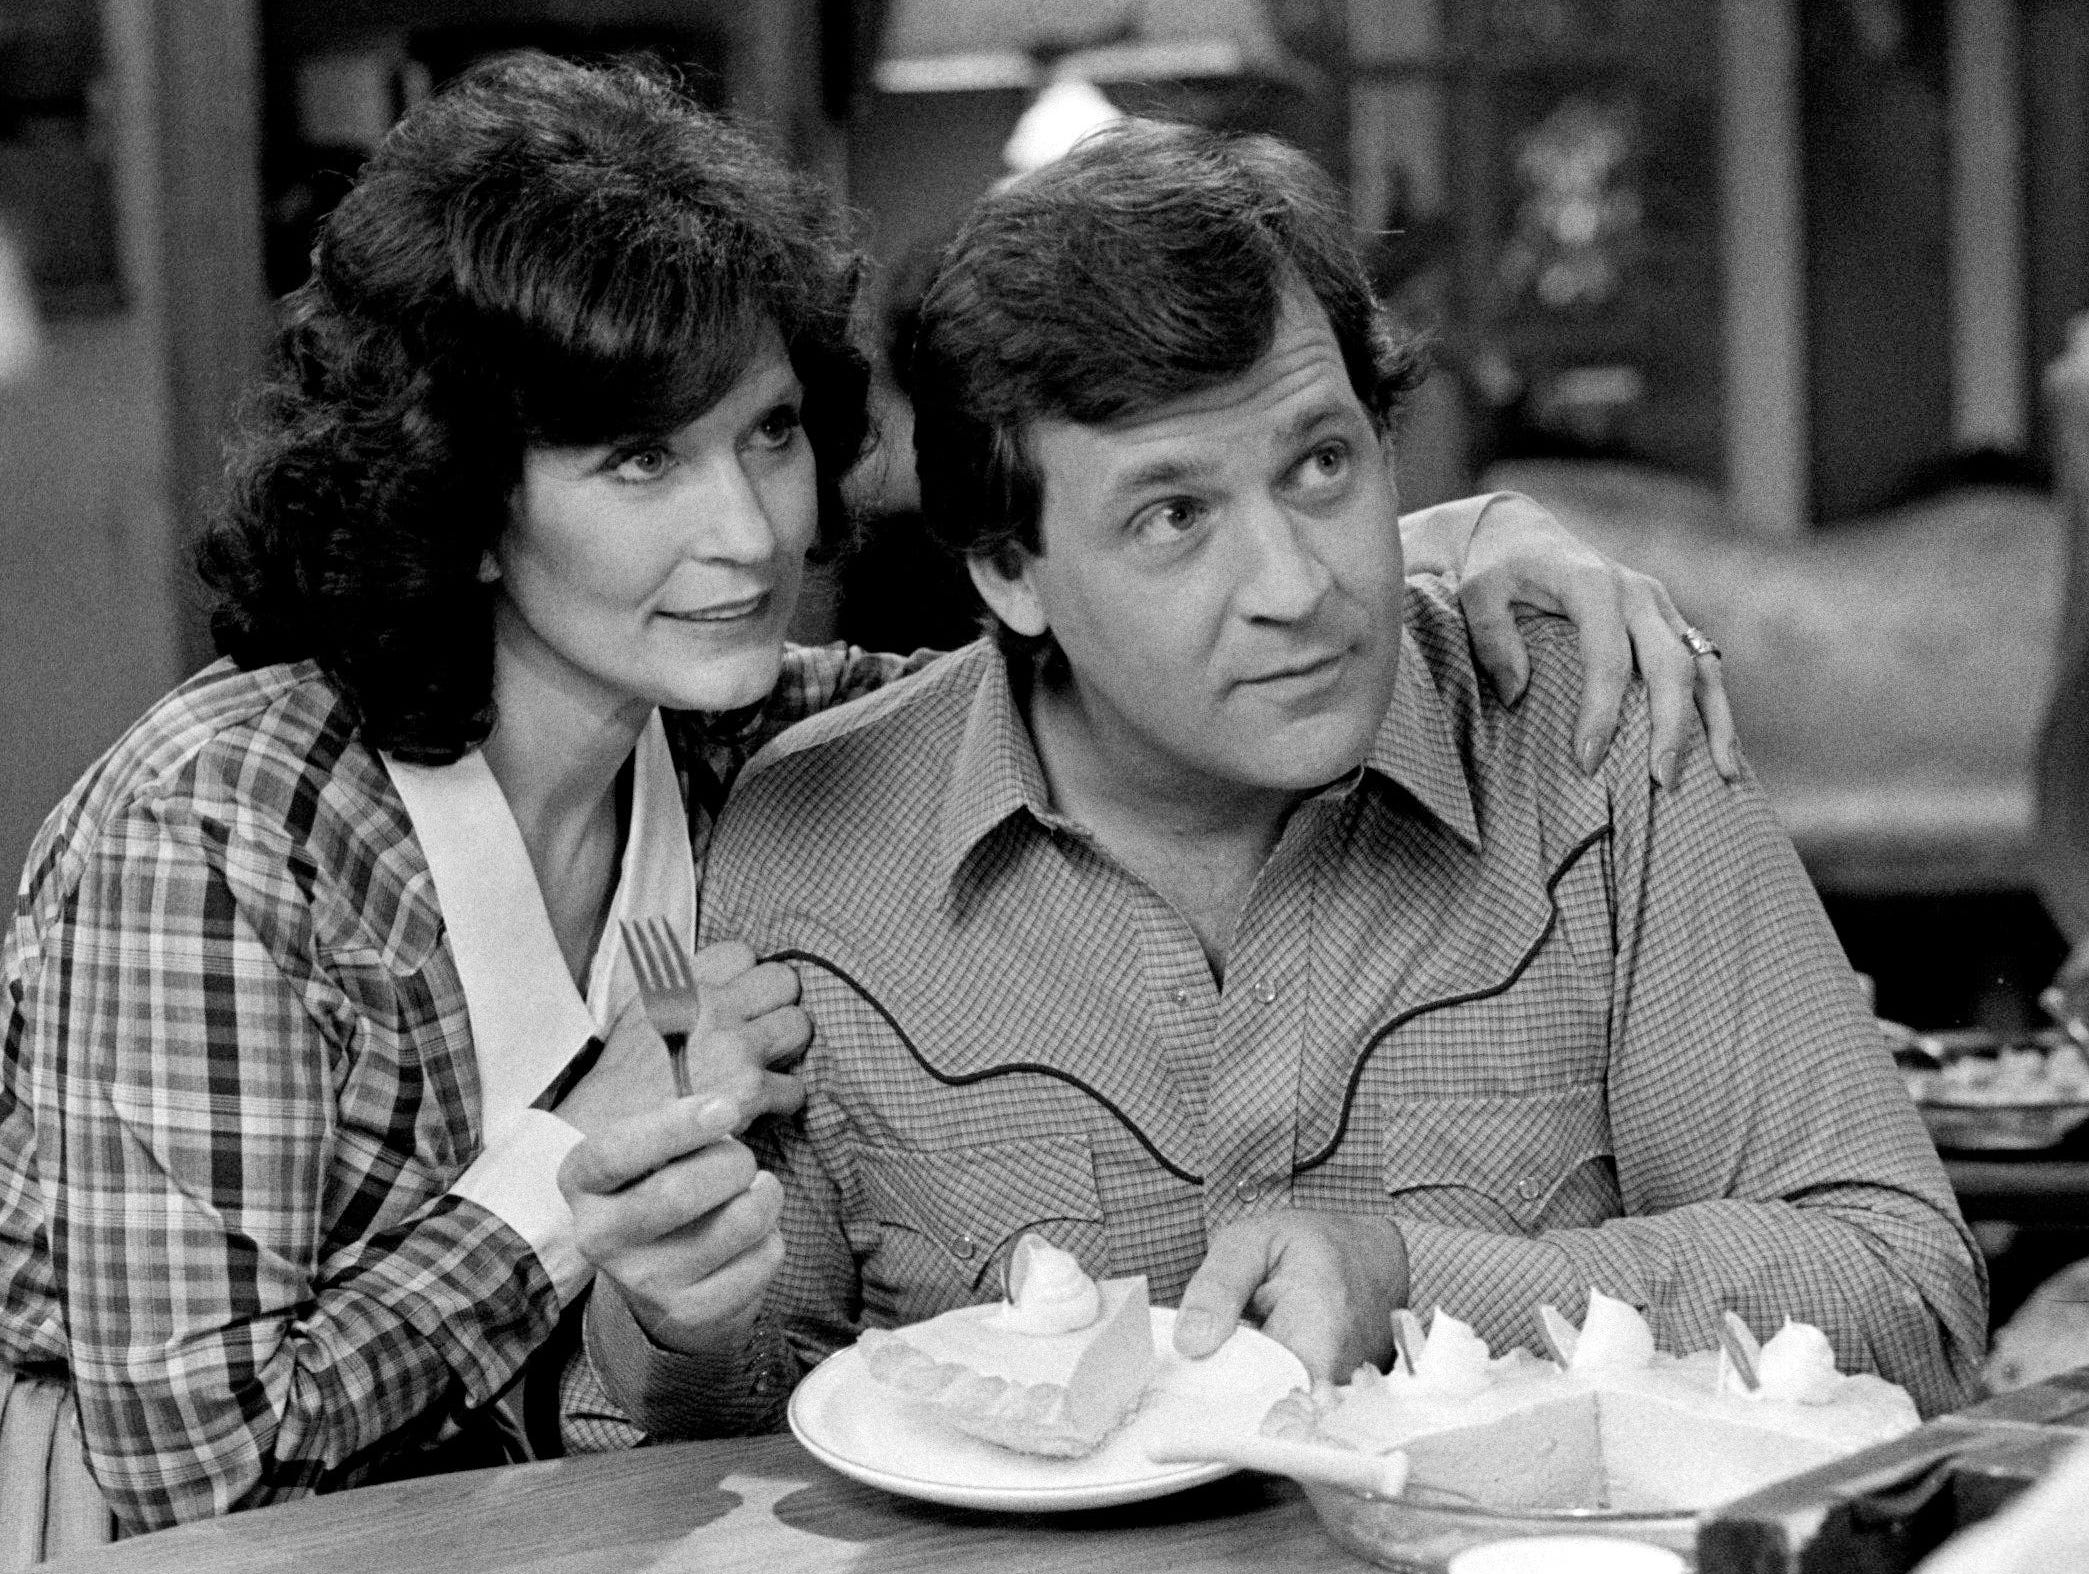 Loretta Lynn, left, is working with songwriter Steve Pippin during the taping of her new Crisco commercial at the Tennessee Performing Arts Center in Nashville March 25, 1983. Lynn, a gal that knows how to make her own pies and cakes, use Crisco at home.